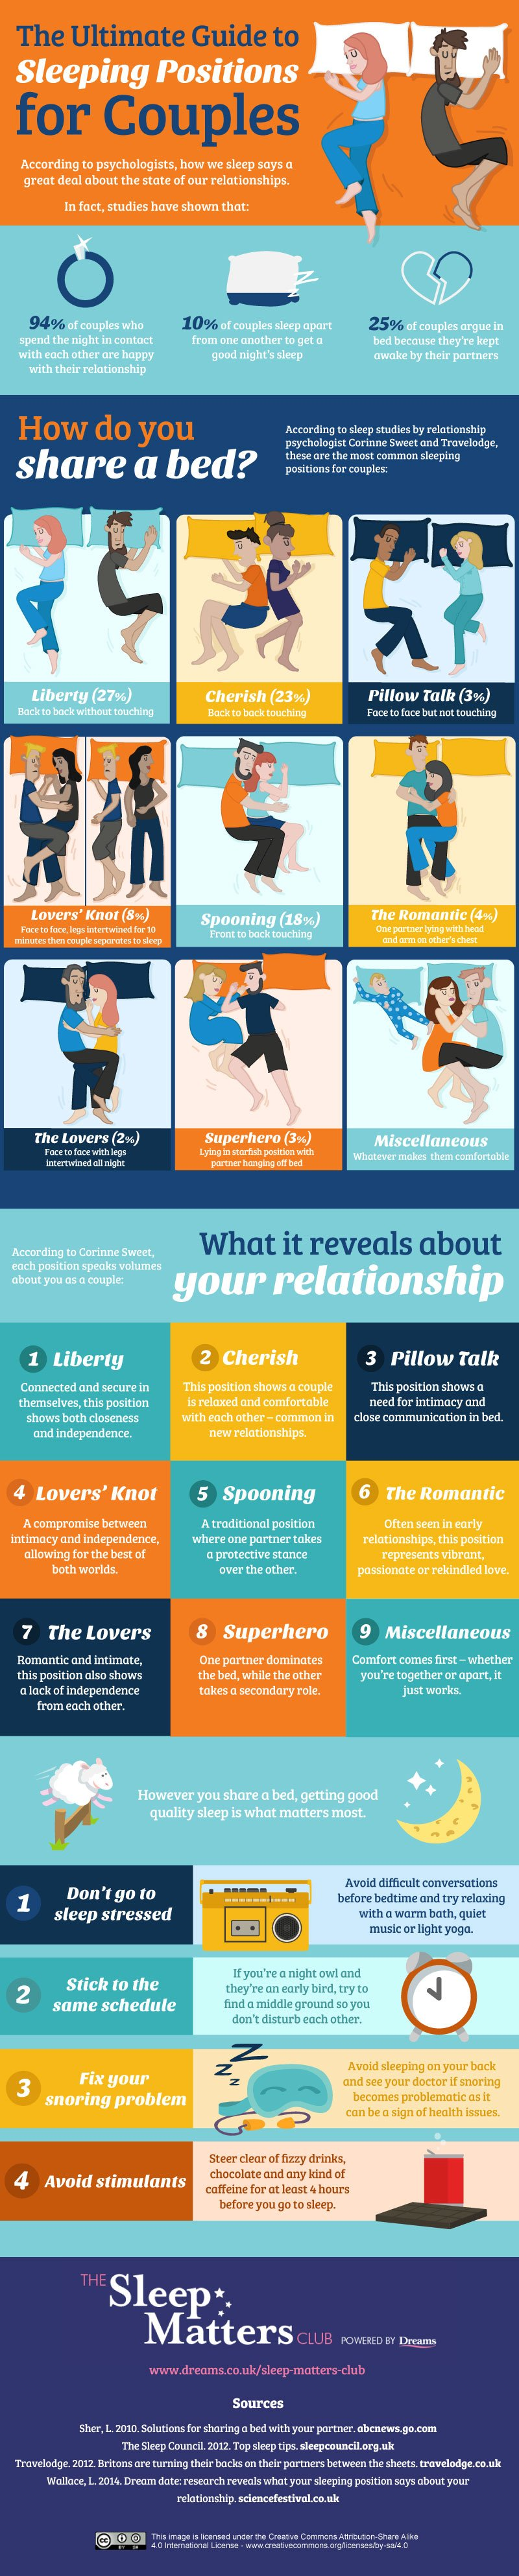 The Ultimate Guide to Sleeping Positions for Couples, from The Sleep Matters Club.